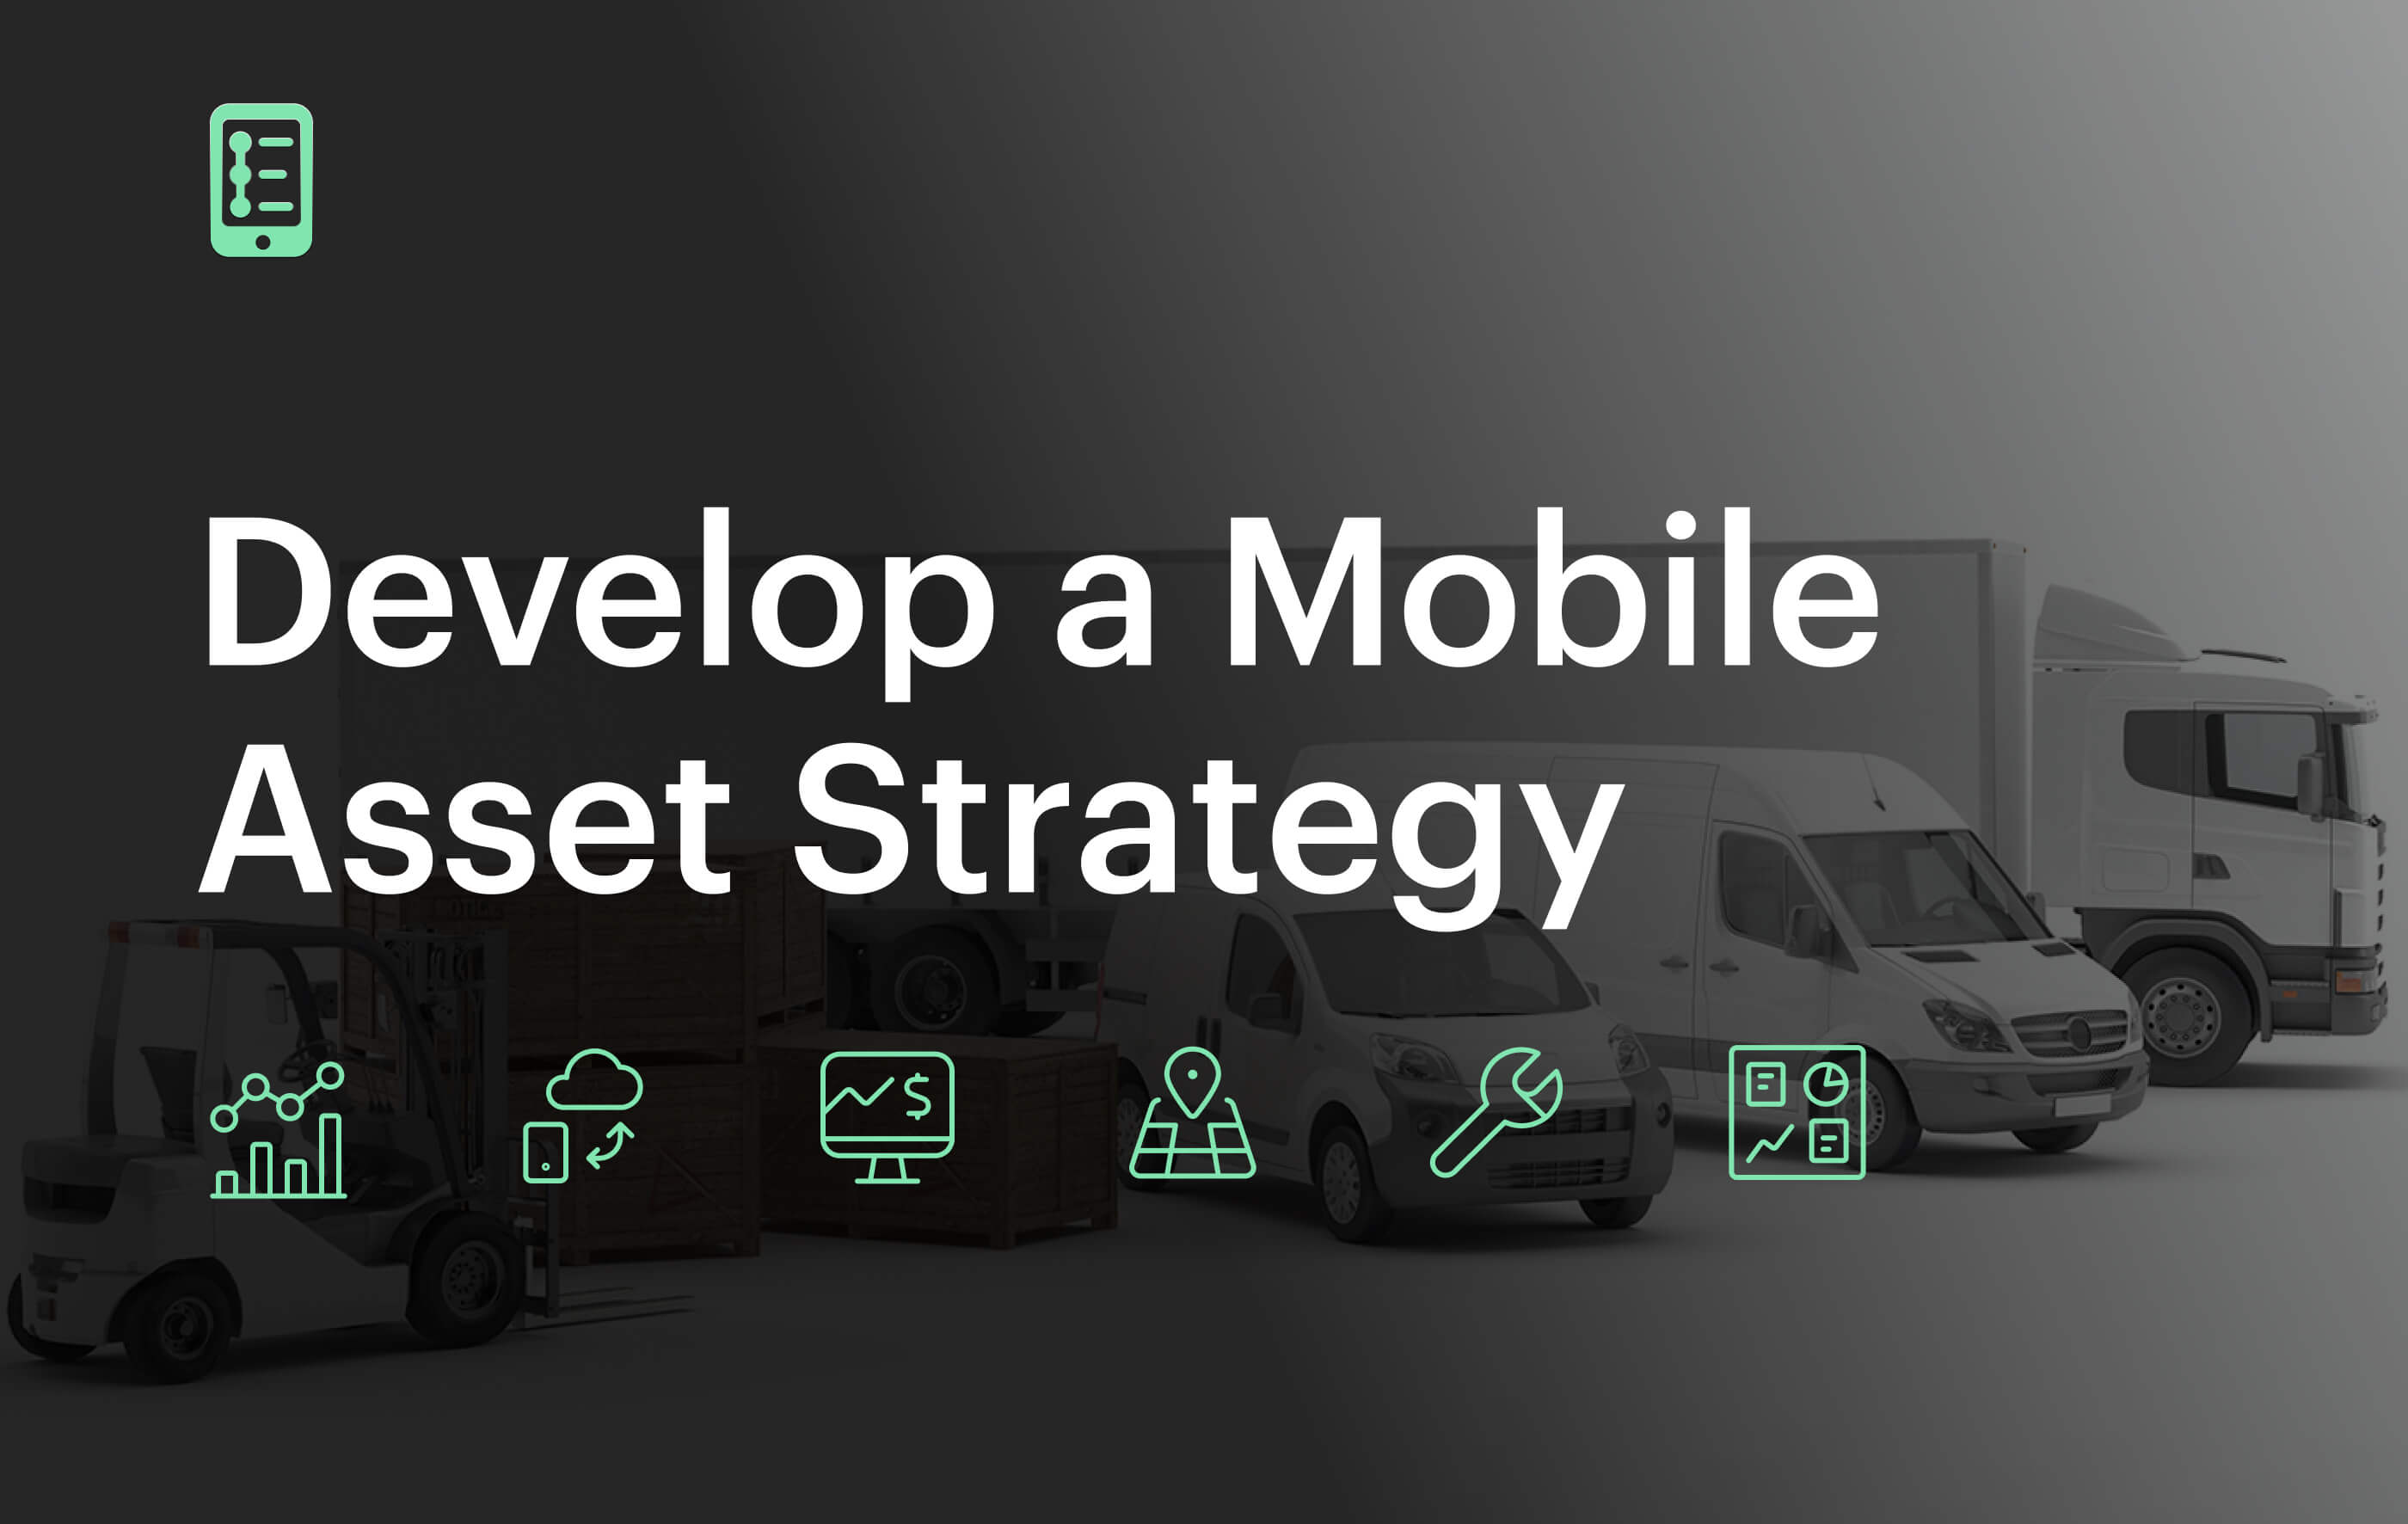 Mobile asset strategy